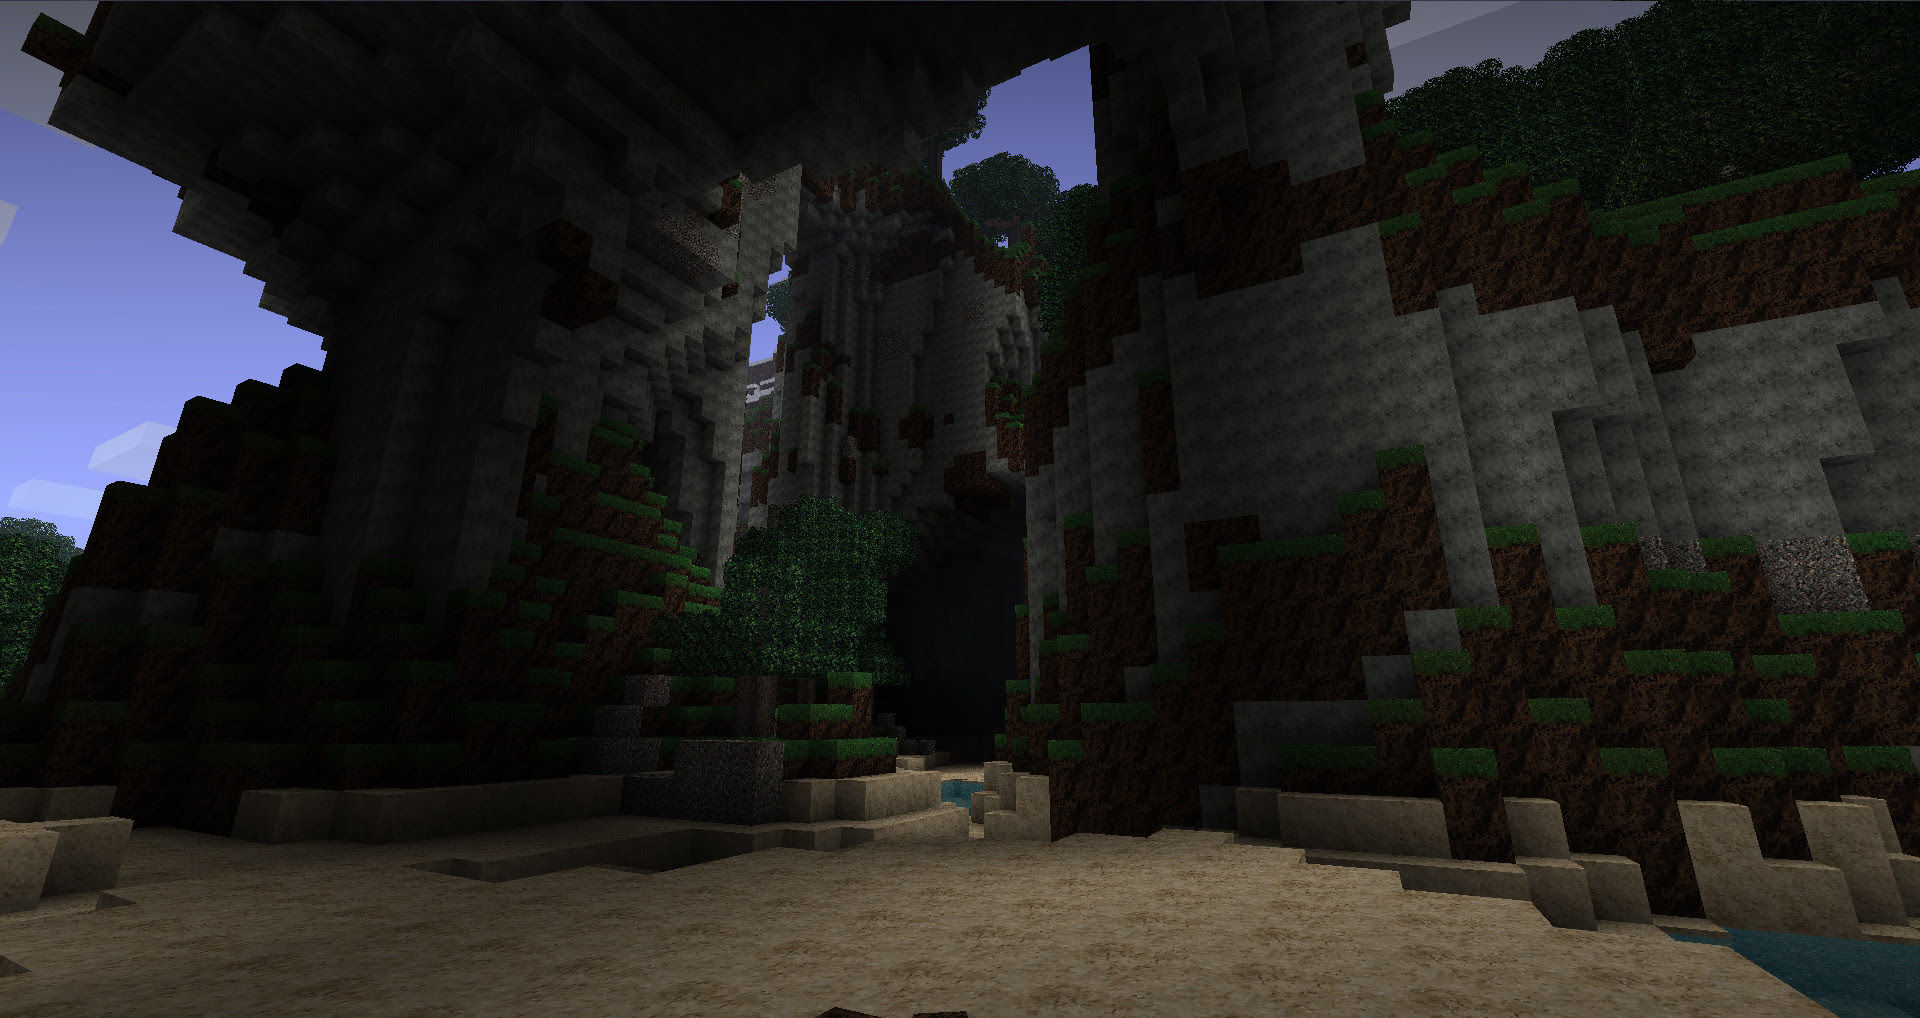 You May Download Freeware Here: MINECRAFT TEXTURE PACKS 1.4.7 64X64